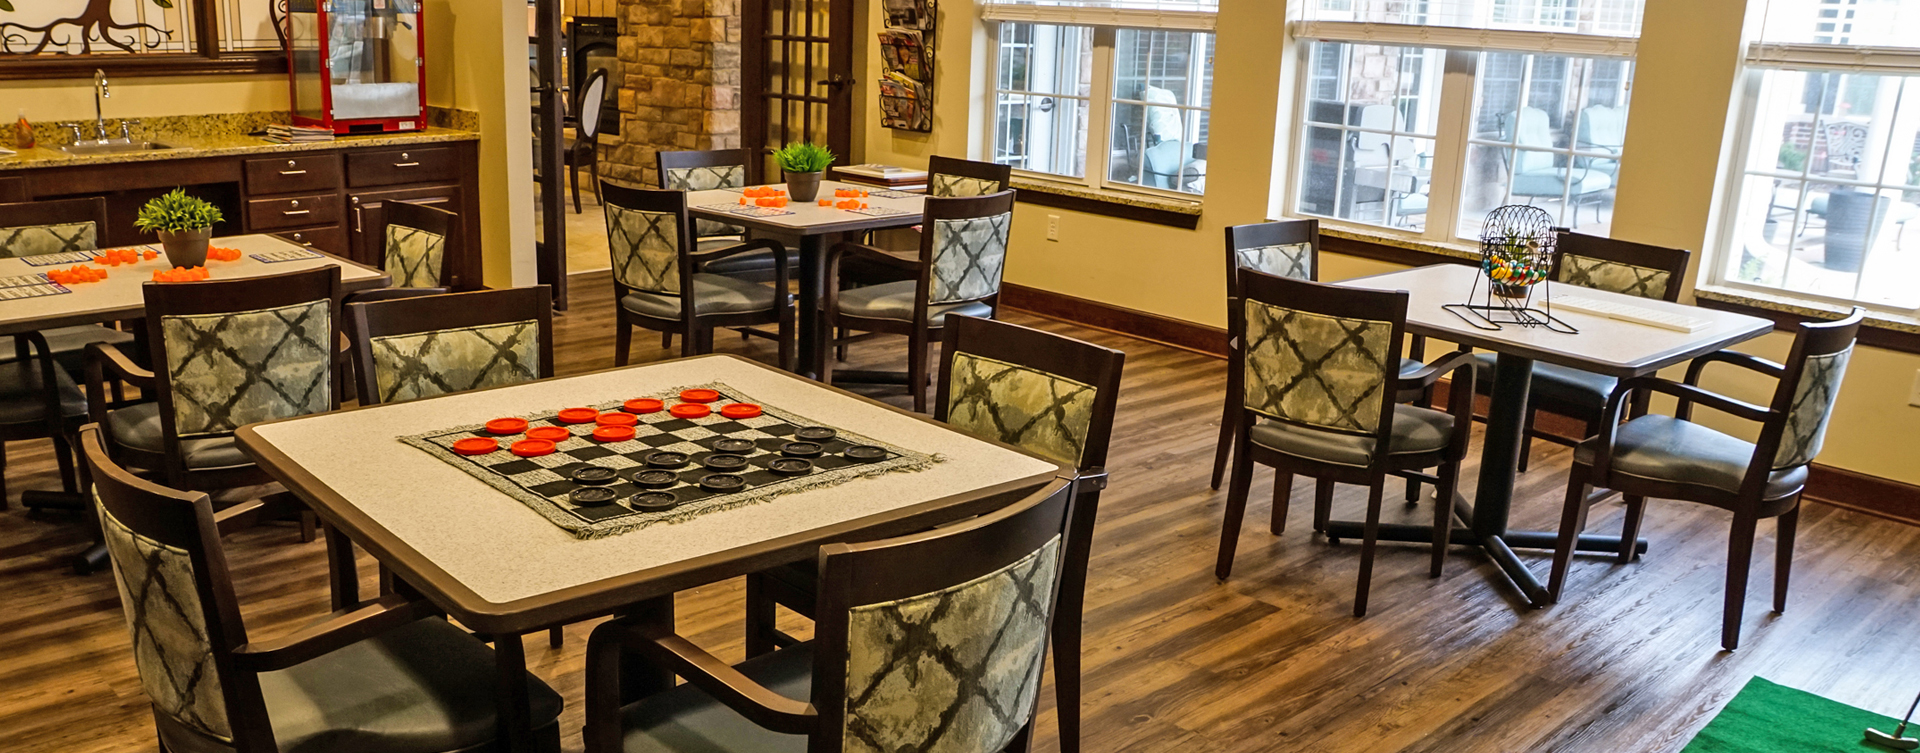 Unleash your creative side in the activity room at Bickford of Aurora